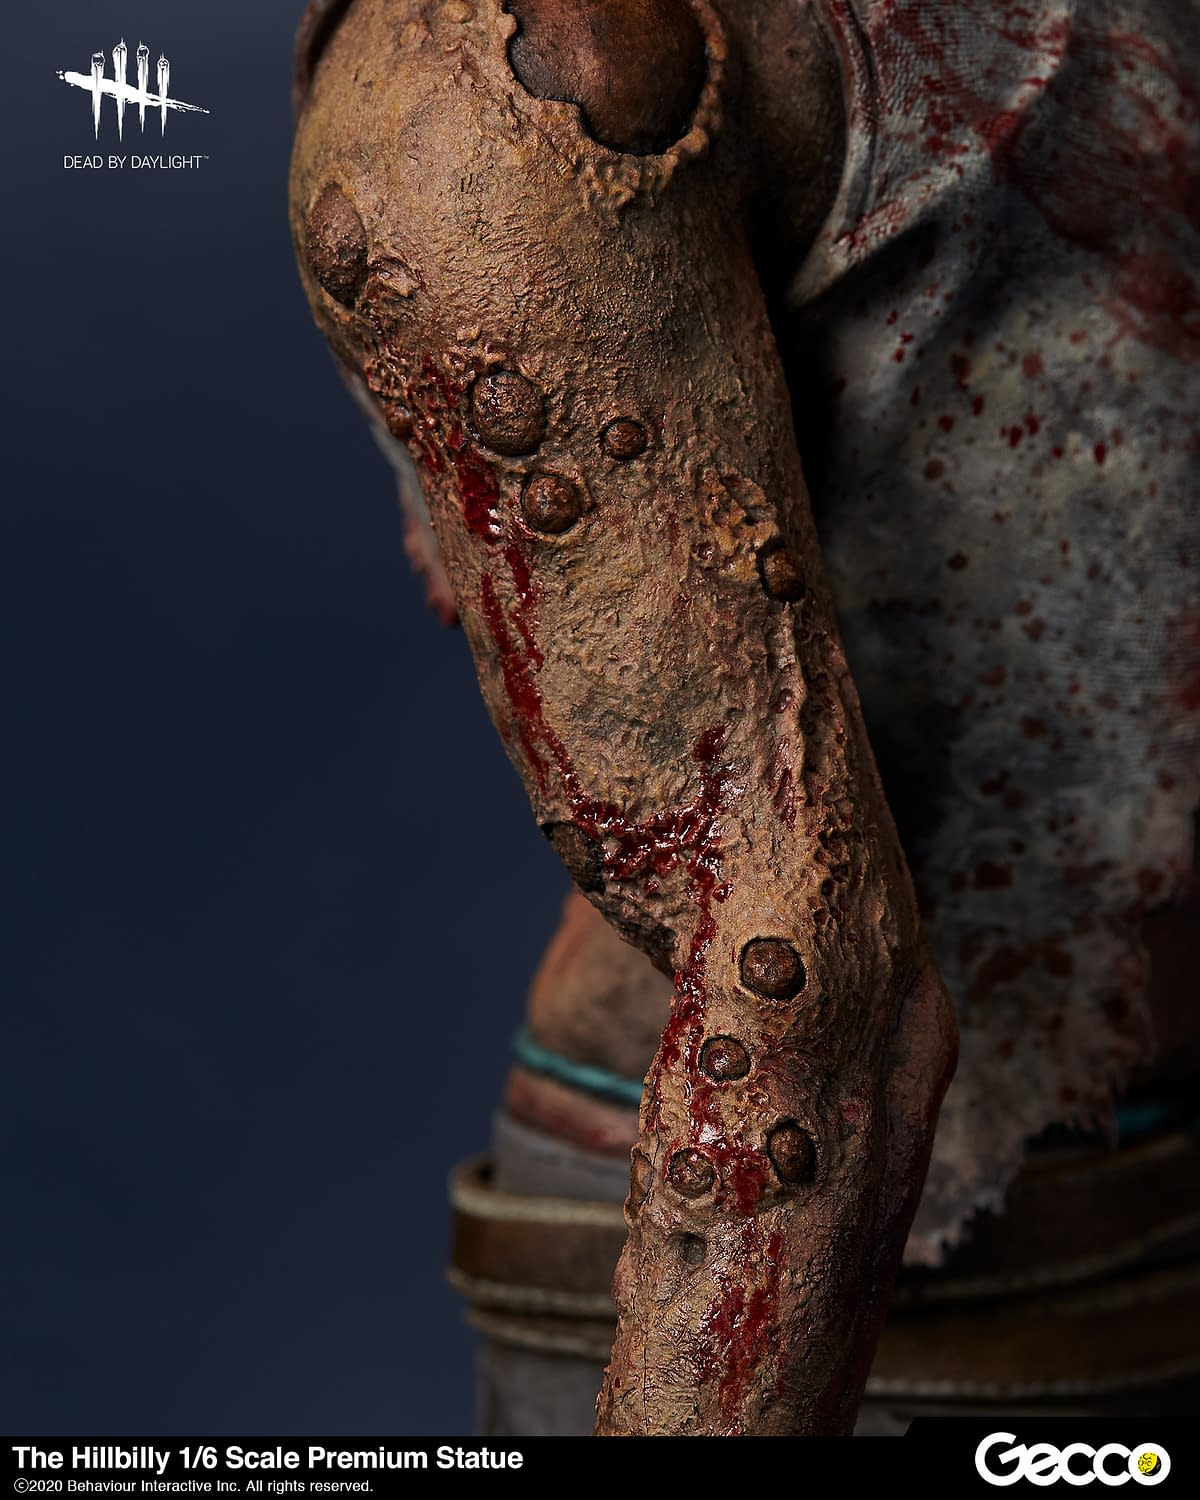 Gecco-Dead-by-Daylight-Hillbilly-Statue-016